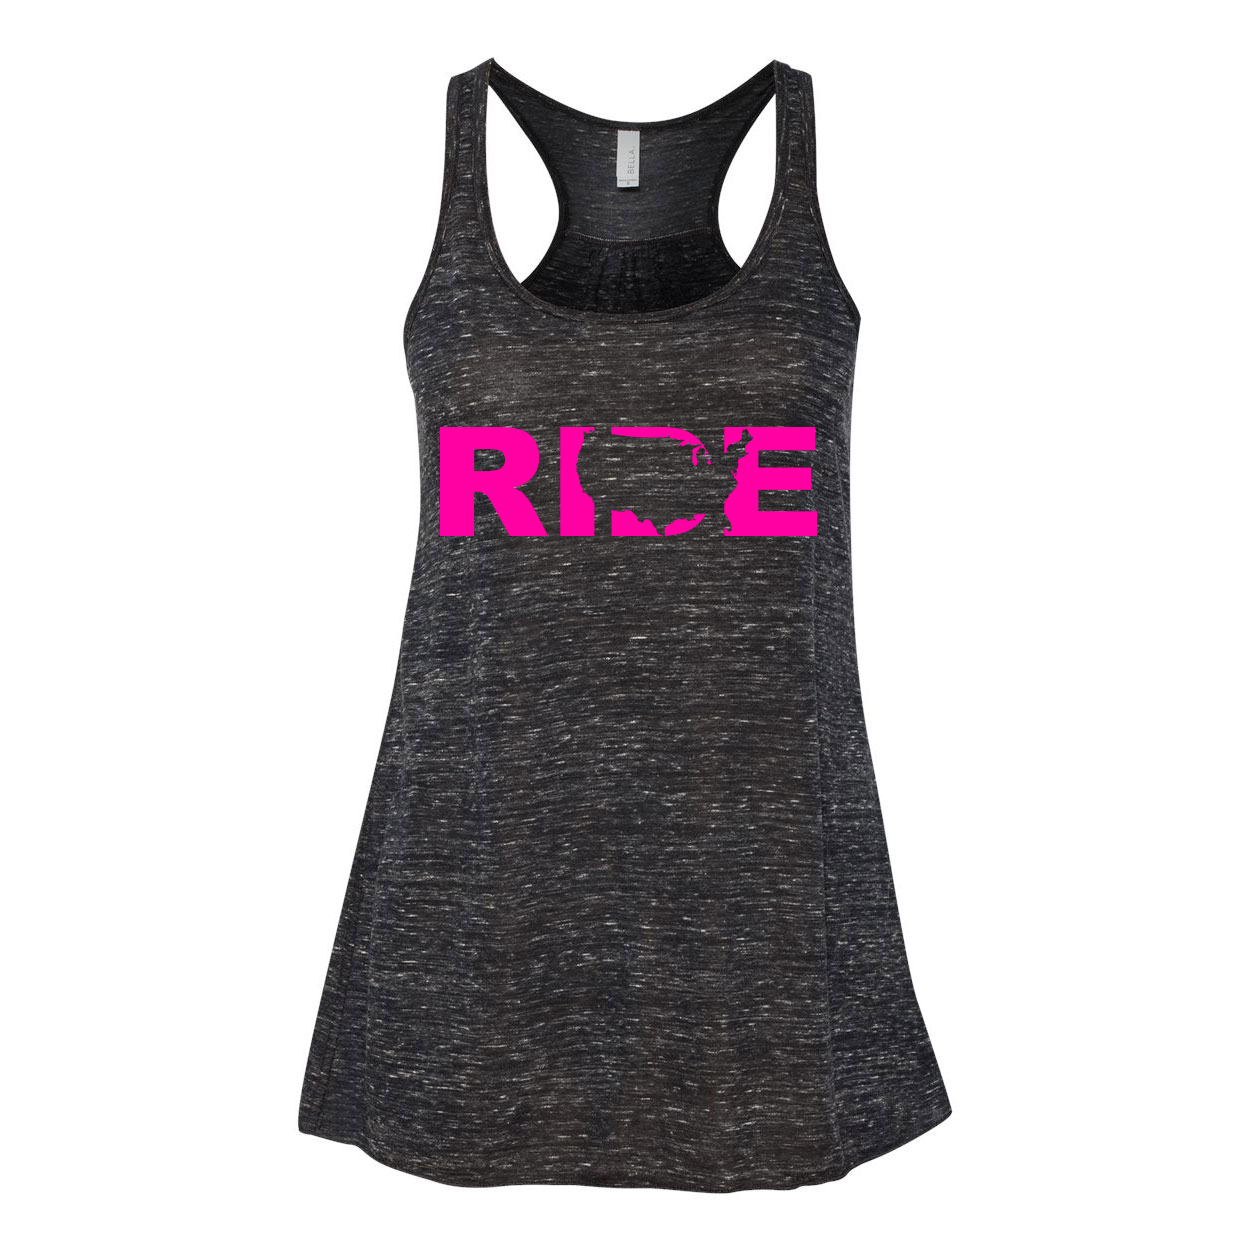 Ride United States Classic Women's Flowy Racerback Tank Top Black Marble (Pink Logo)